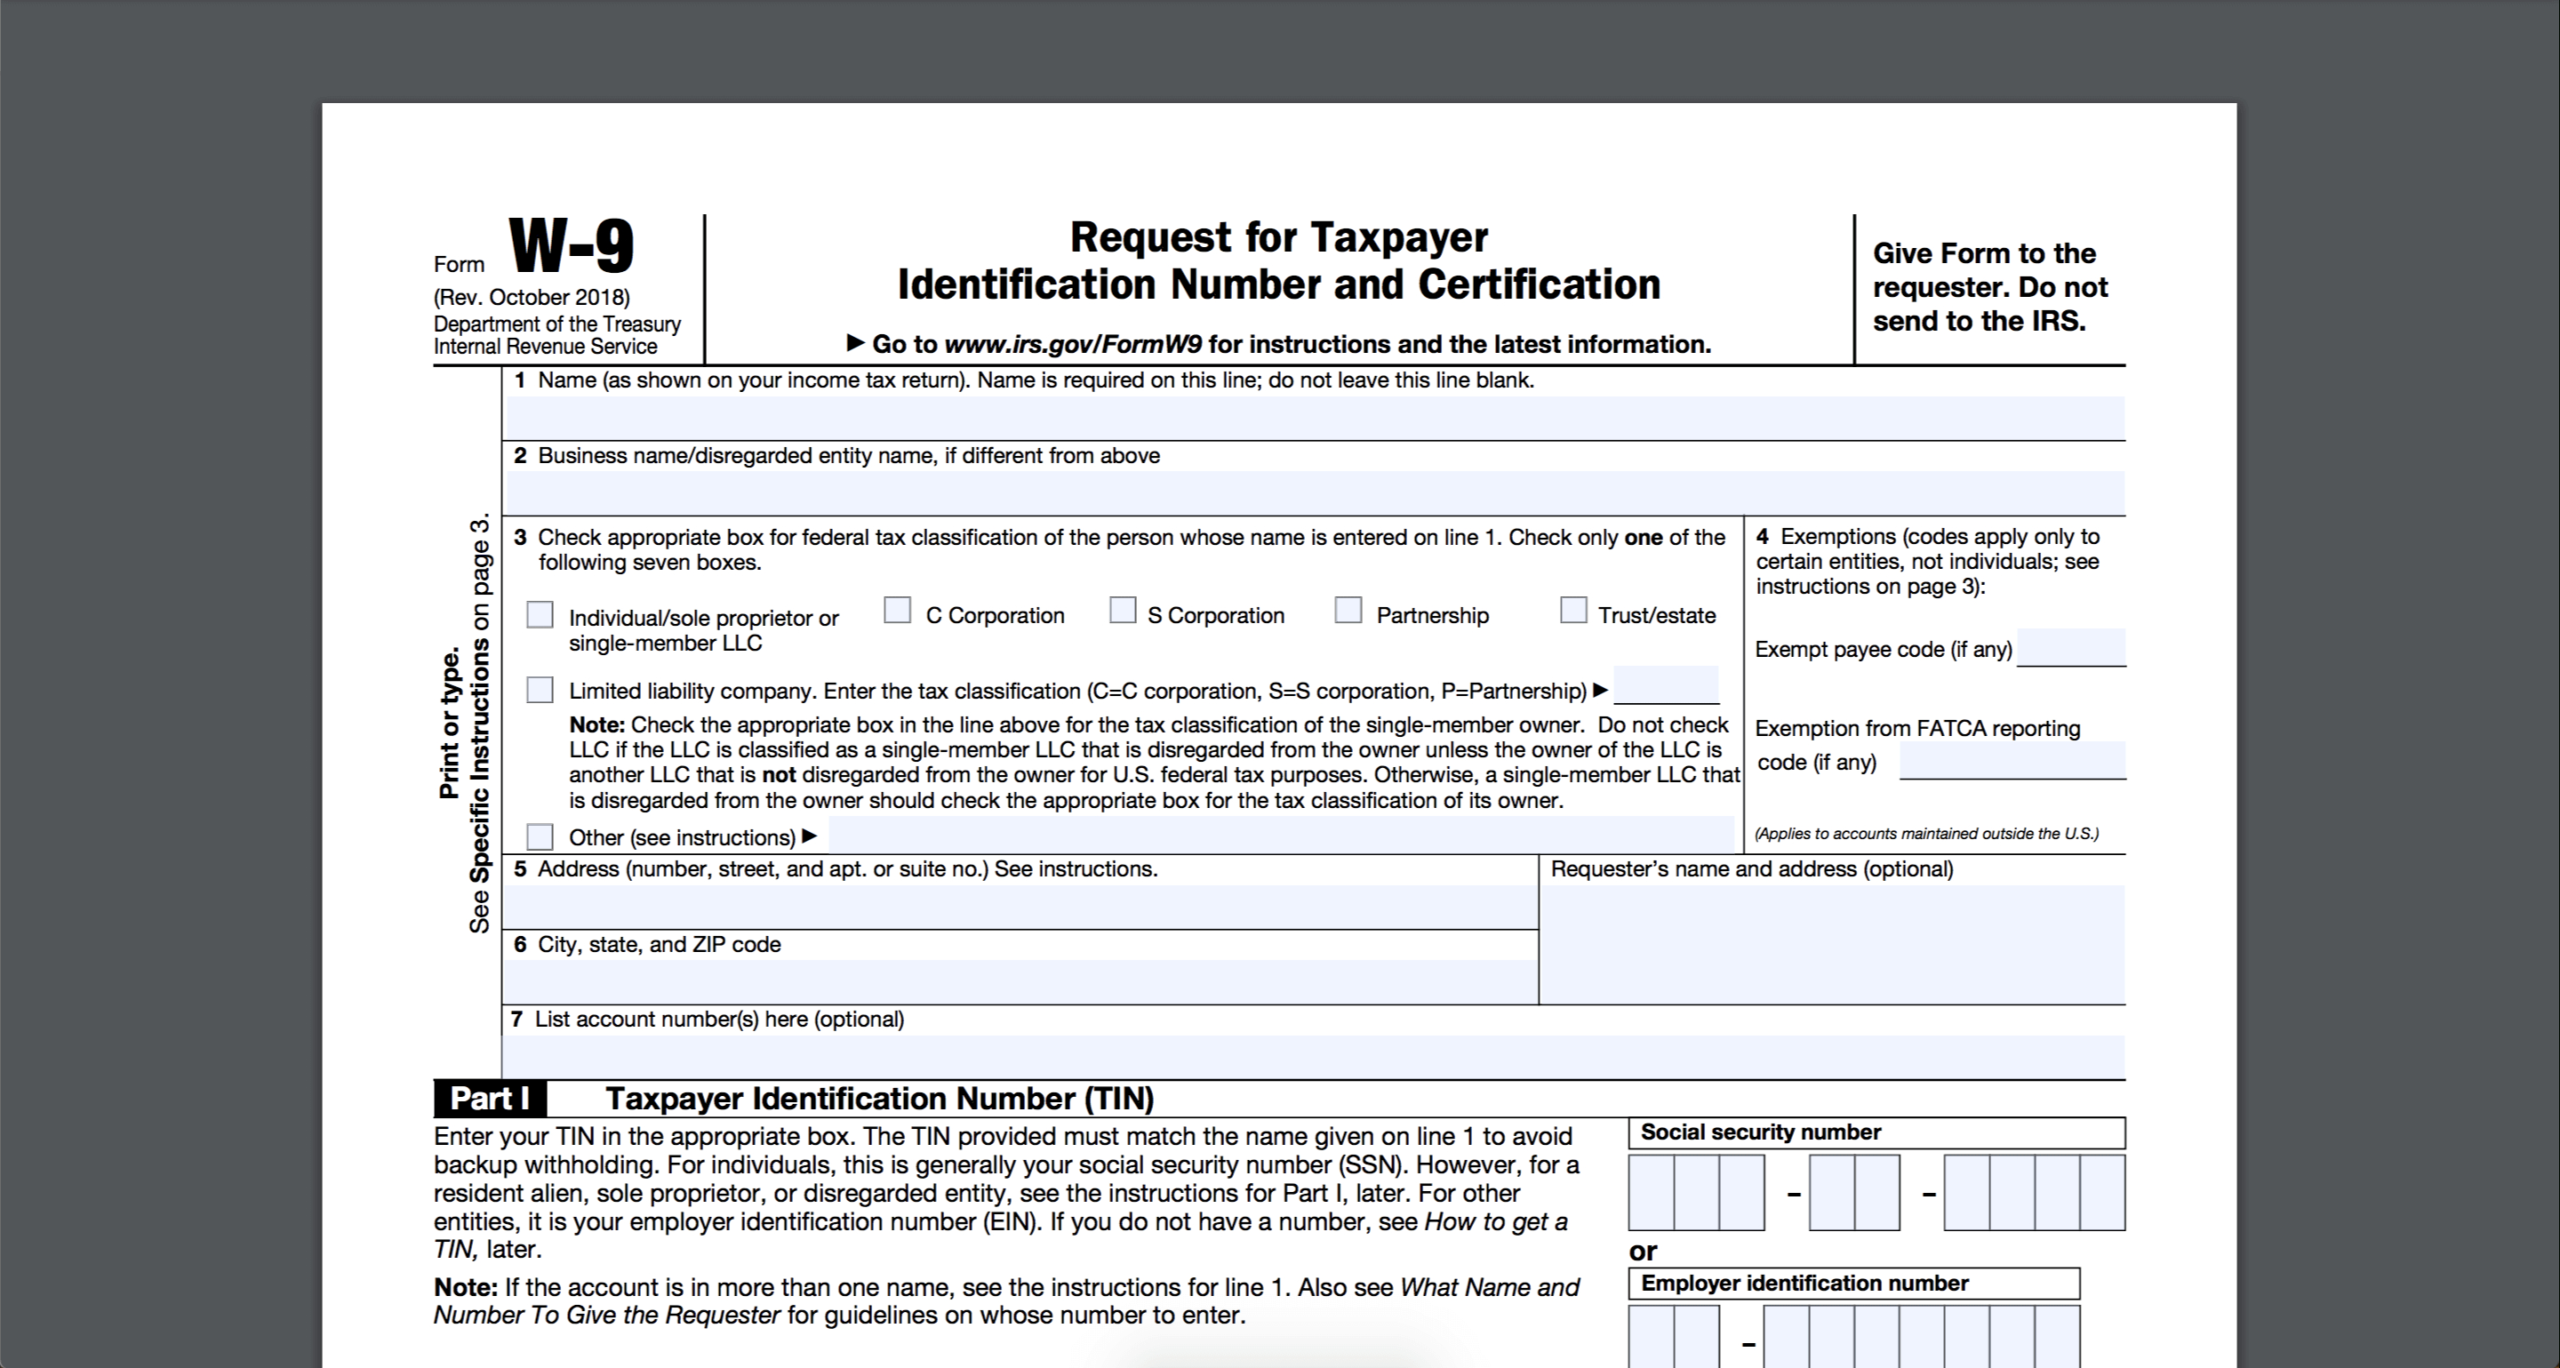 How To Fill Out And Sign Your W-9 Form Online